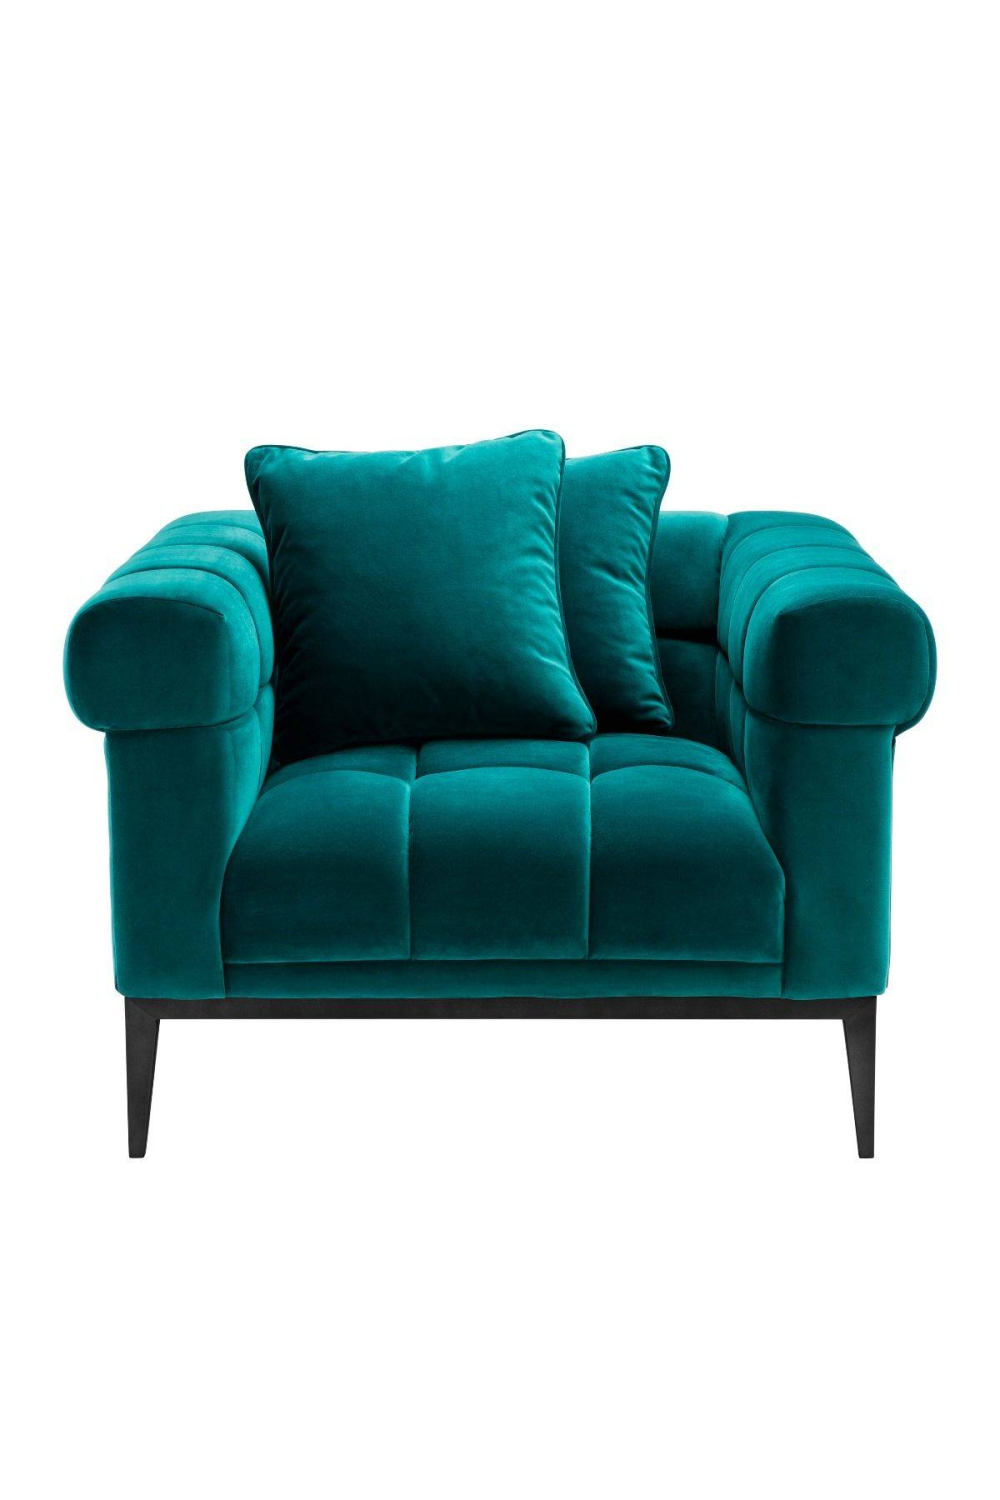 Tufted Sea Green Chair | Eichholtz Aurelio | #1 Eichholtz Retailer